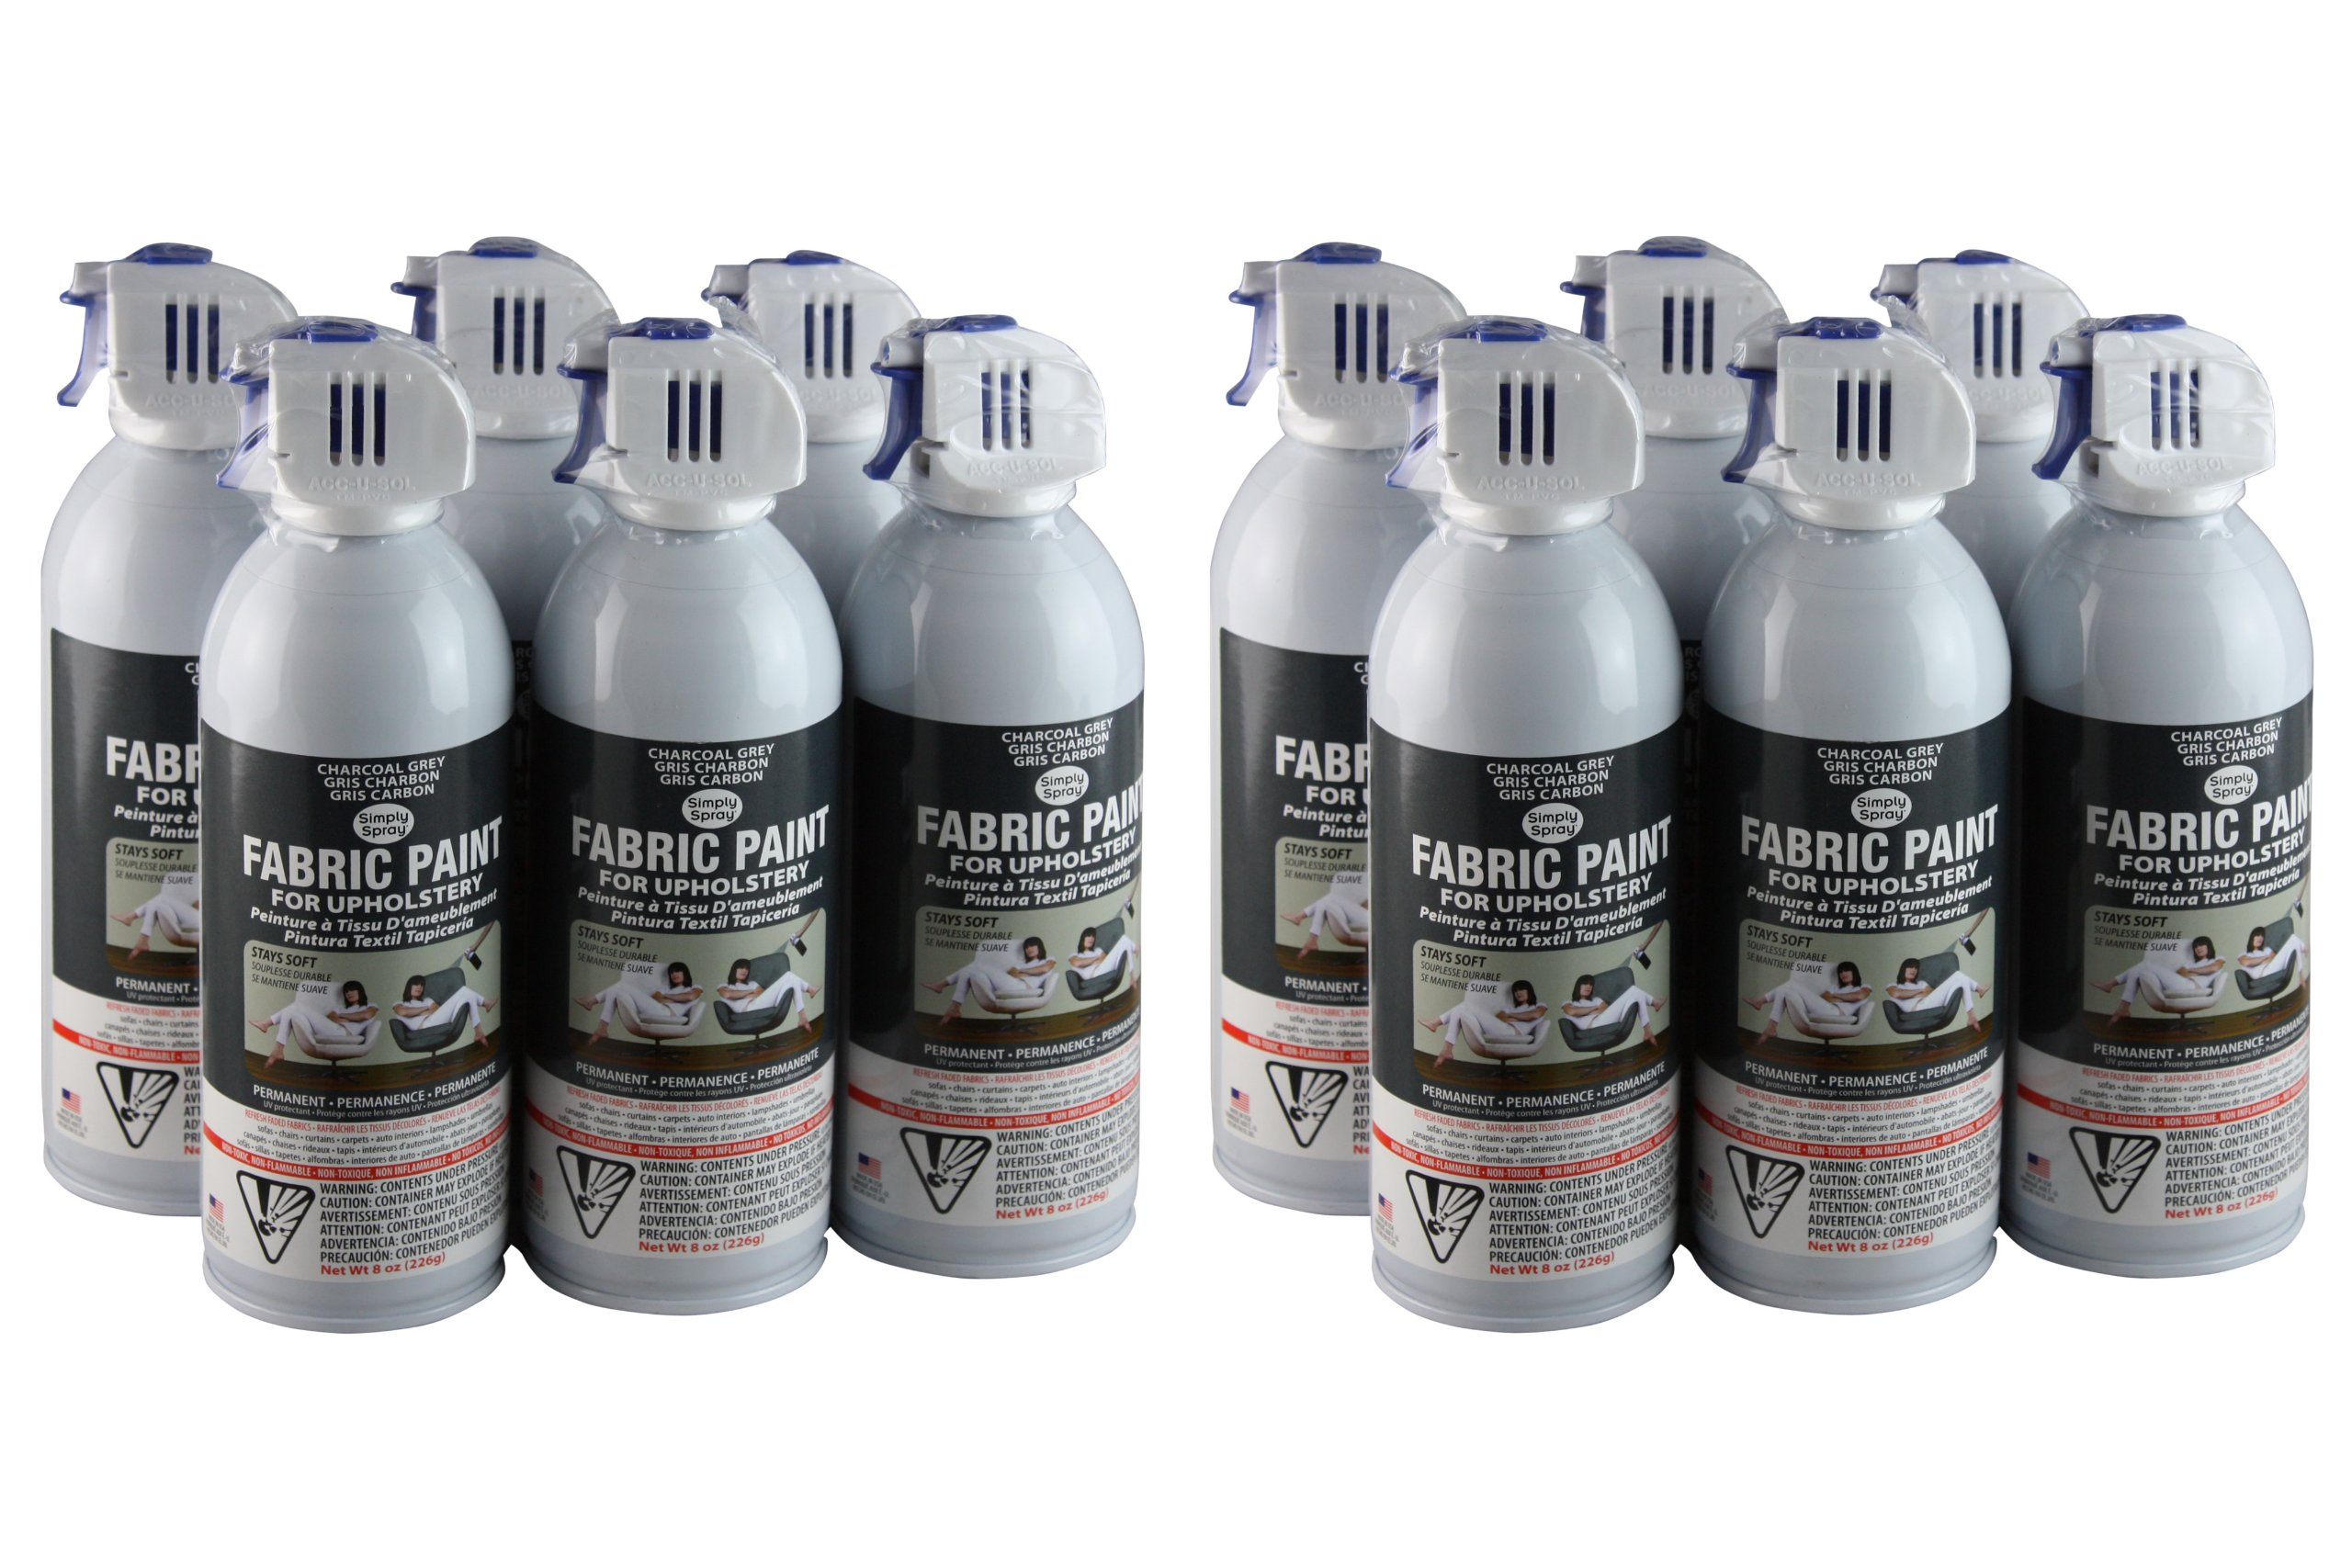 Simply Spray Upholstery Fabric Spray Paint 8 Oz. Can 12 Pack Charcoal Grey